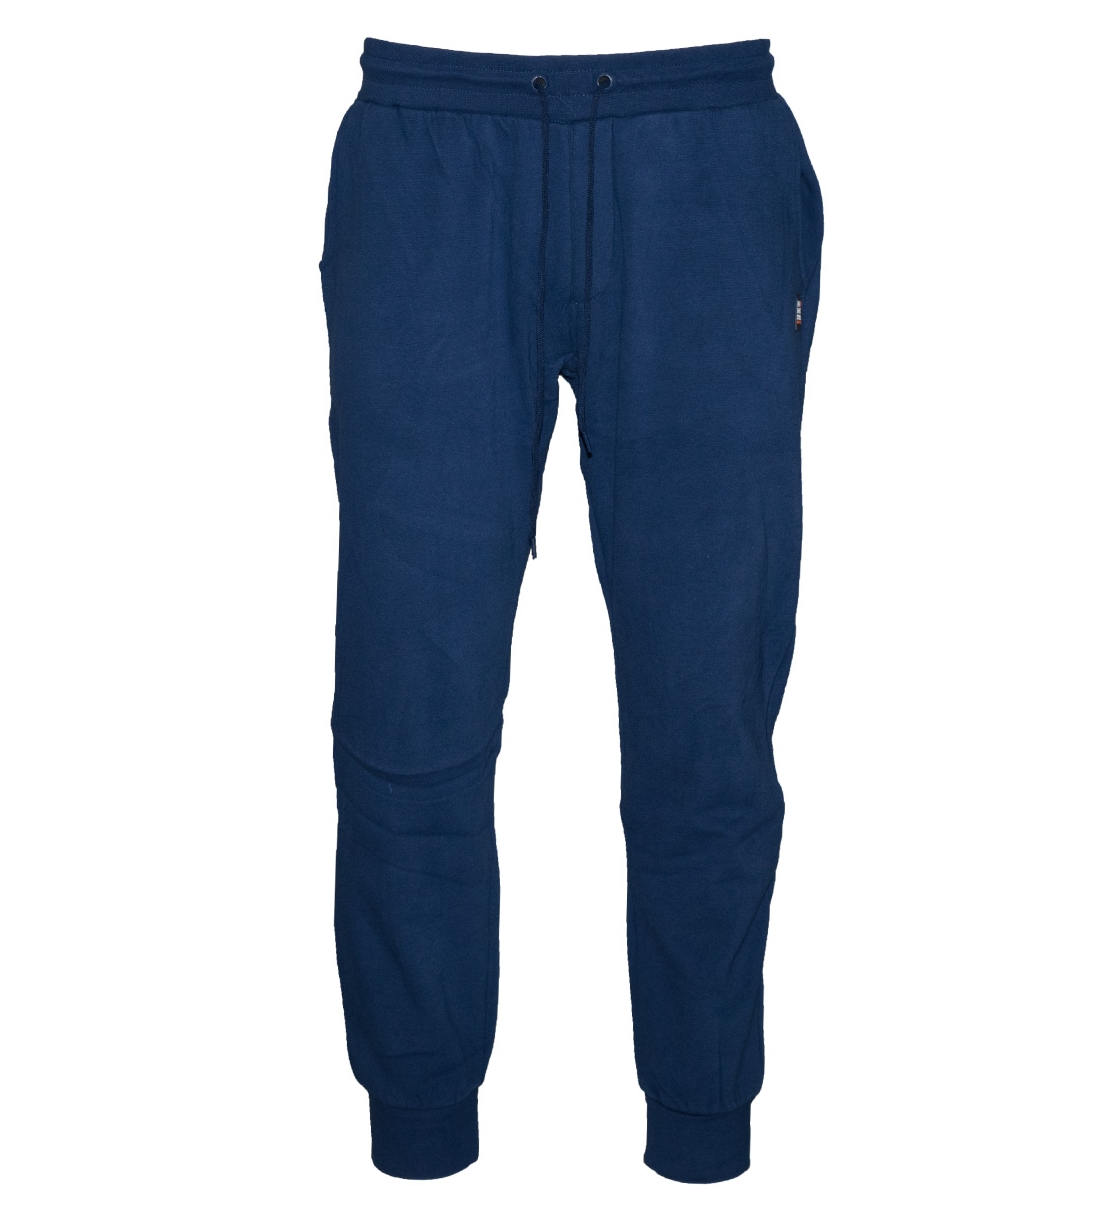 Body Action Ανδρικό Αθλητικό Παντελόνι Men Slim Fit Sweat Pants 023742